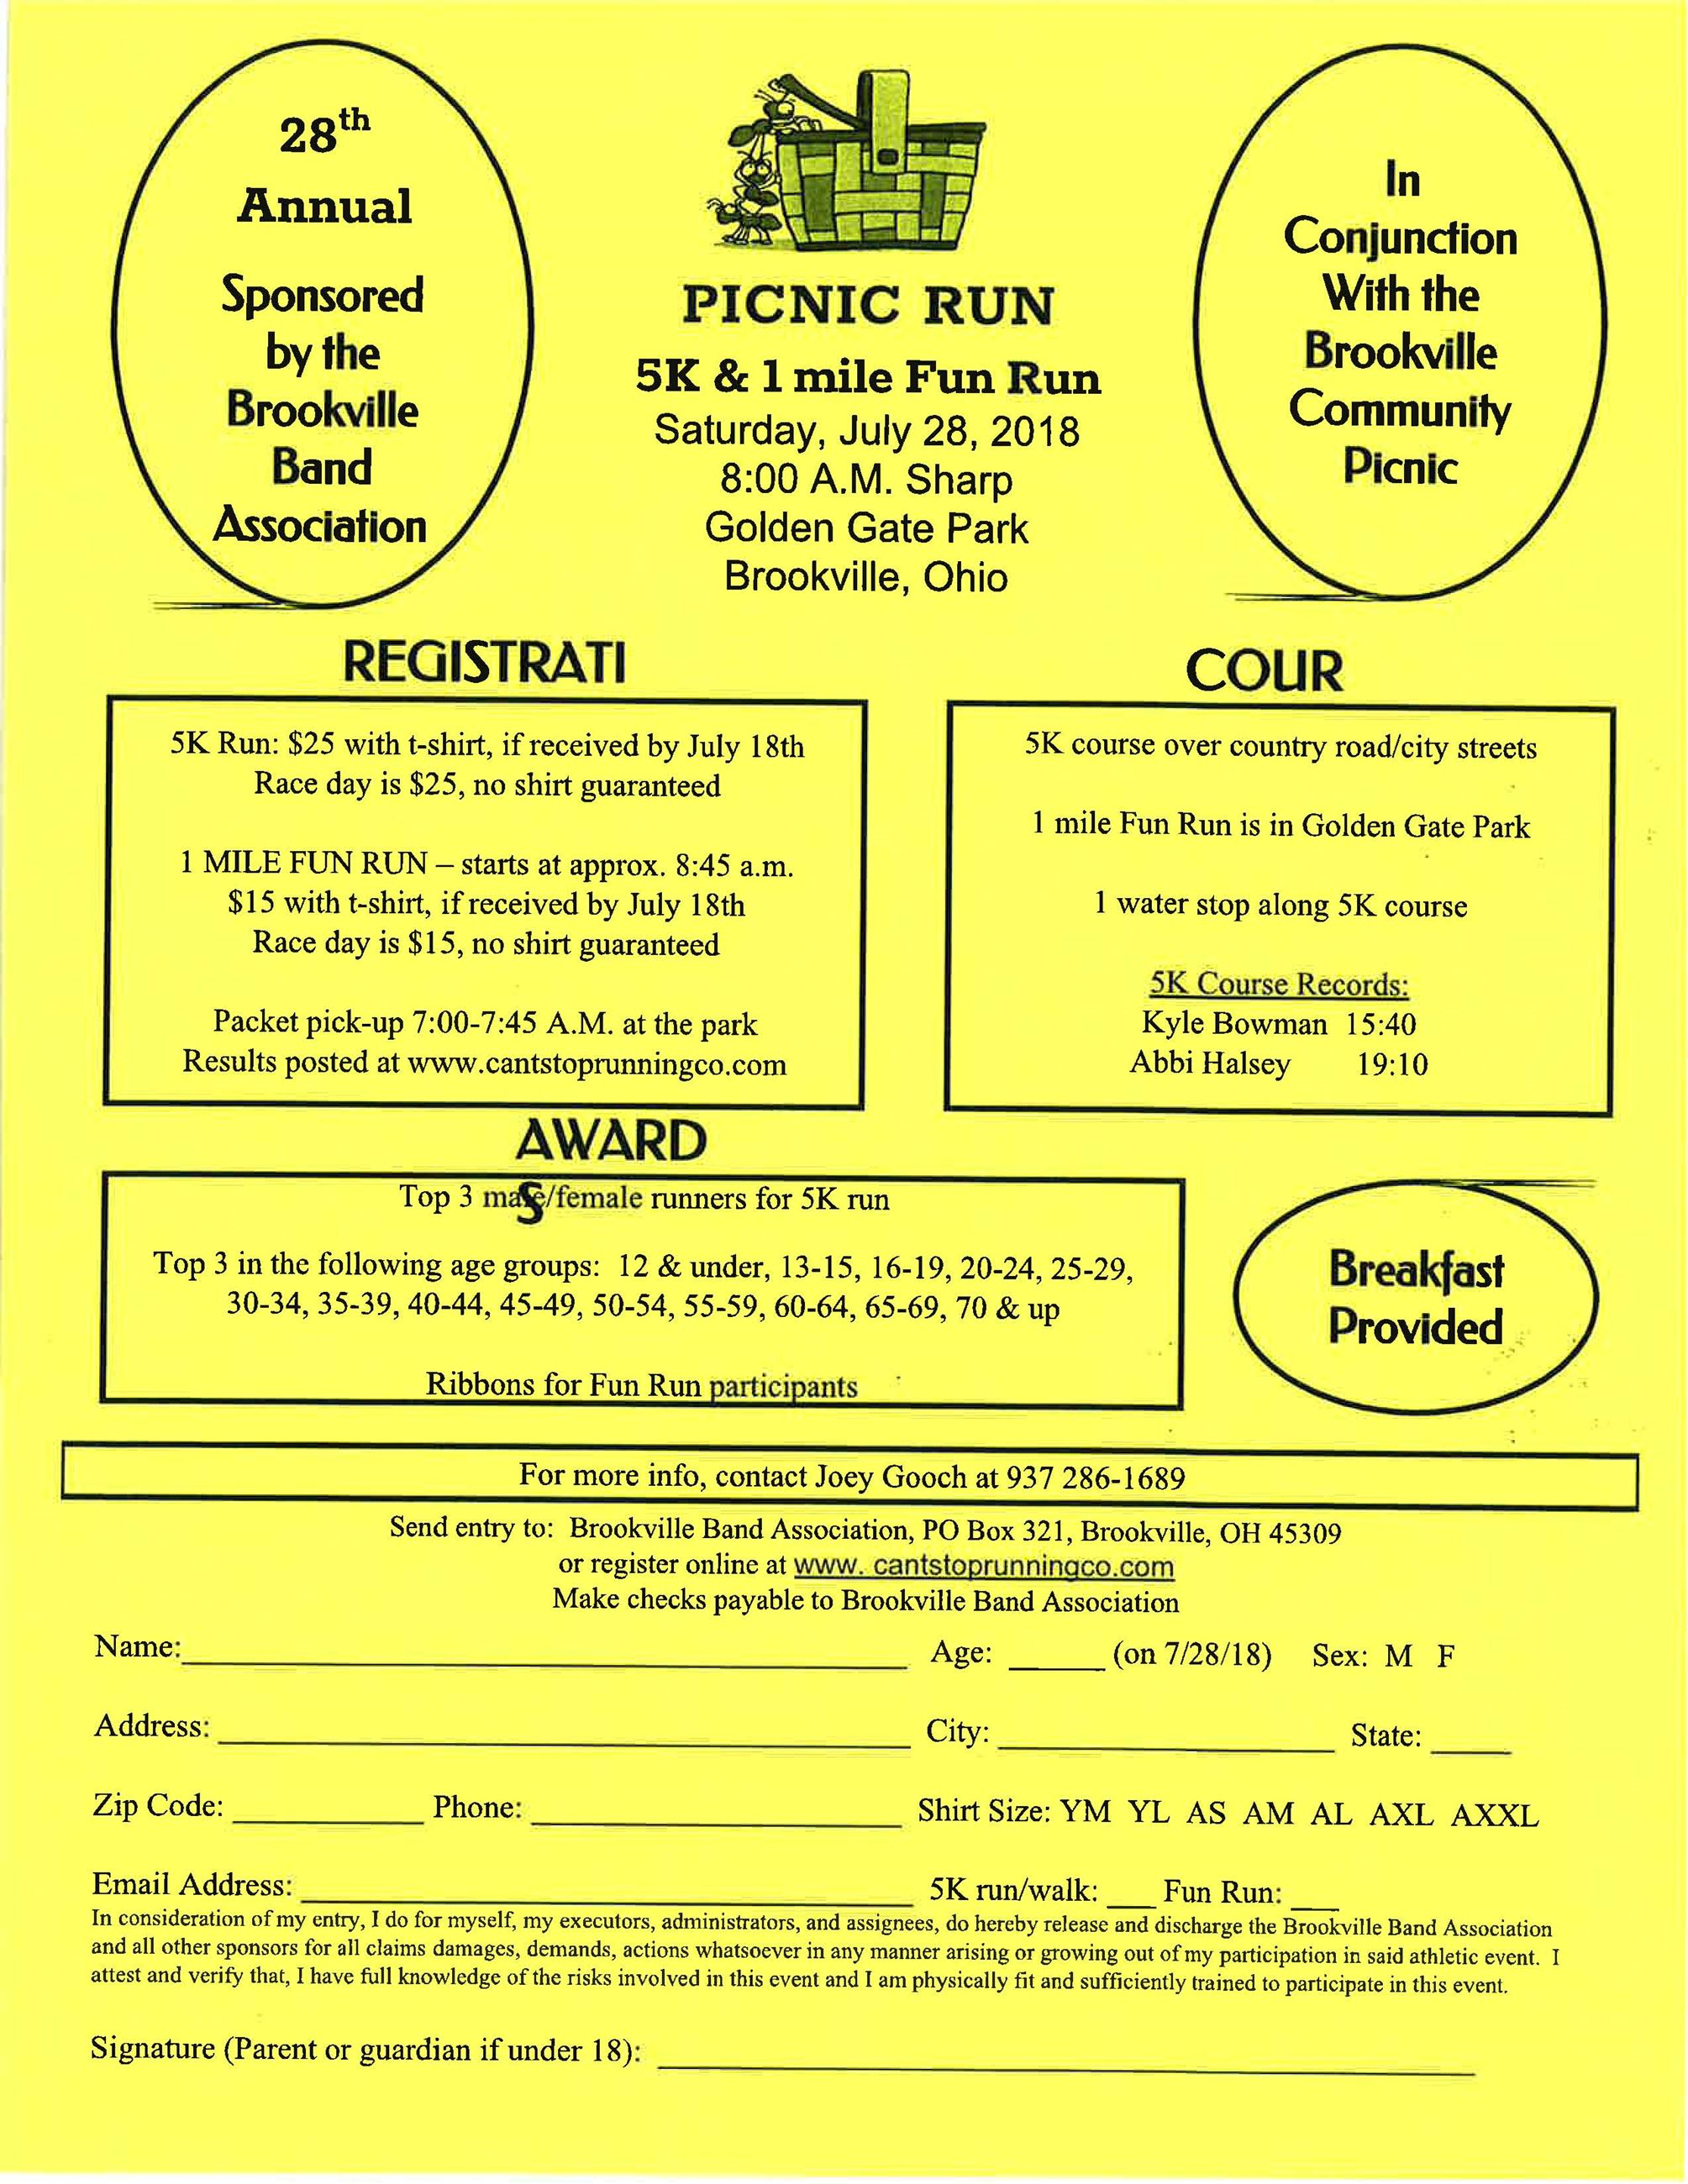 Picnic 5k run flyer